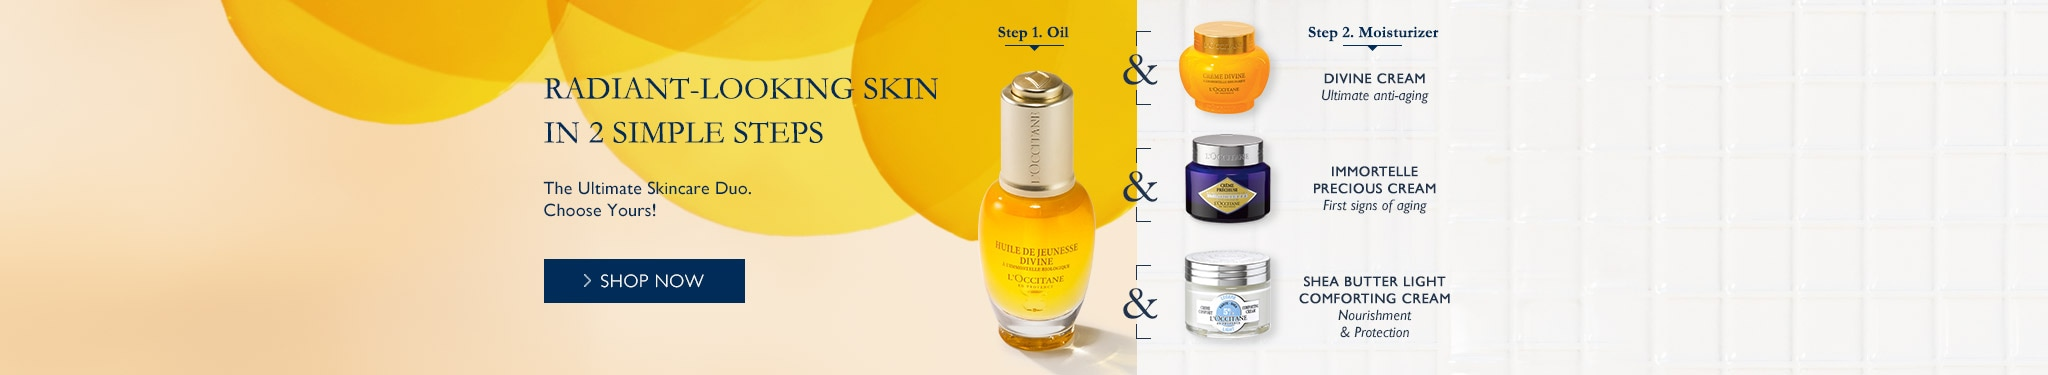 Radiant Looking Skin in 2 simple steps